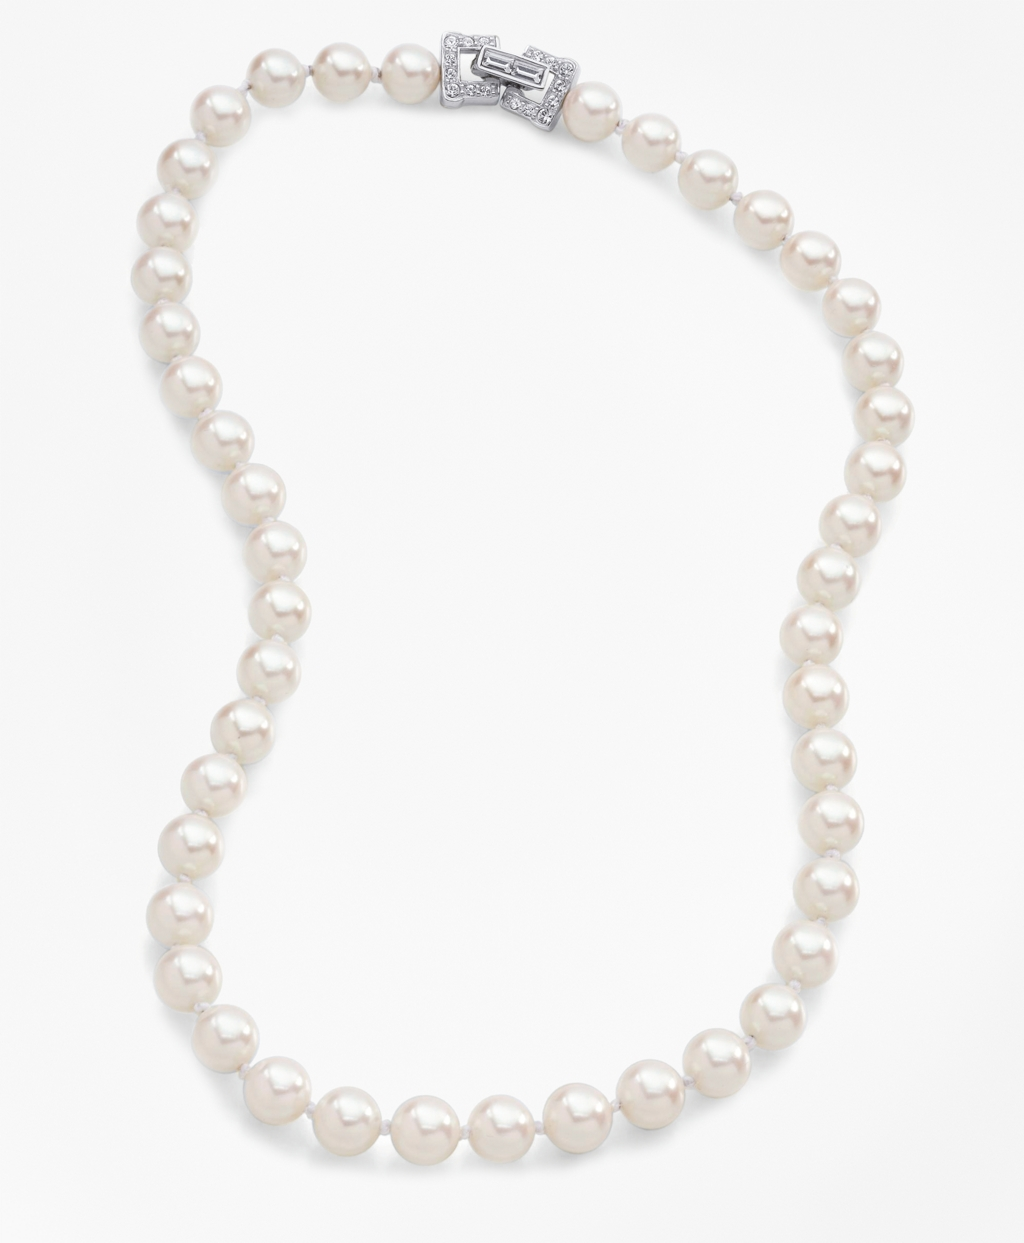 Vintage Style Jewelry, Retro Jewelry Brooks Brothers Womens Glass Pearl Necklace $298.00 AT vintagedancer.com